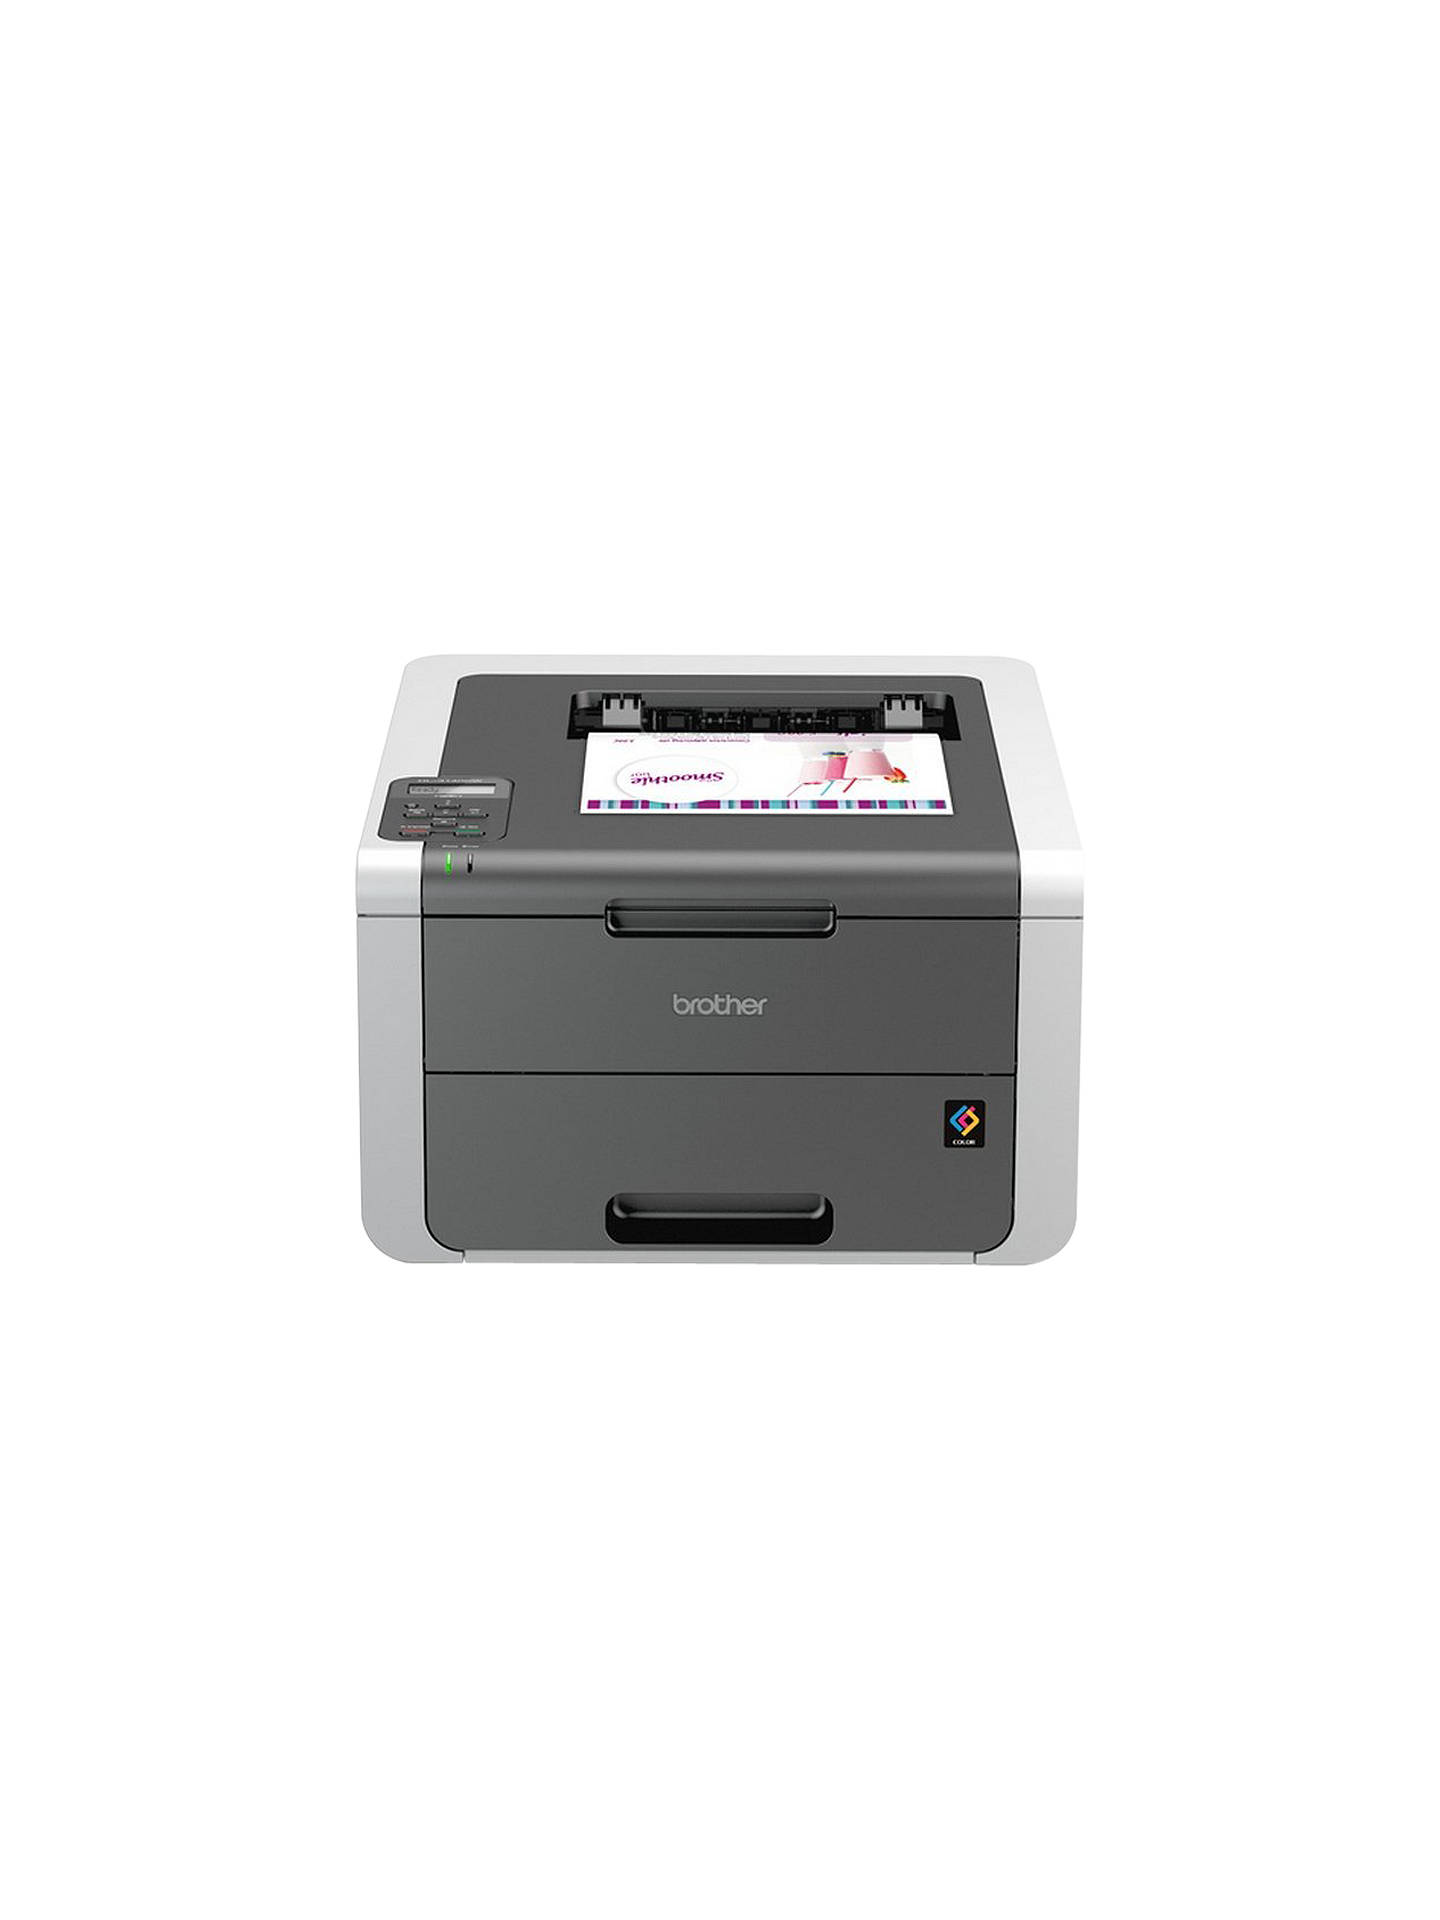 BuyBrother HL-3140CW Wireless Colour Laser Printer Online at johnlewis.com